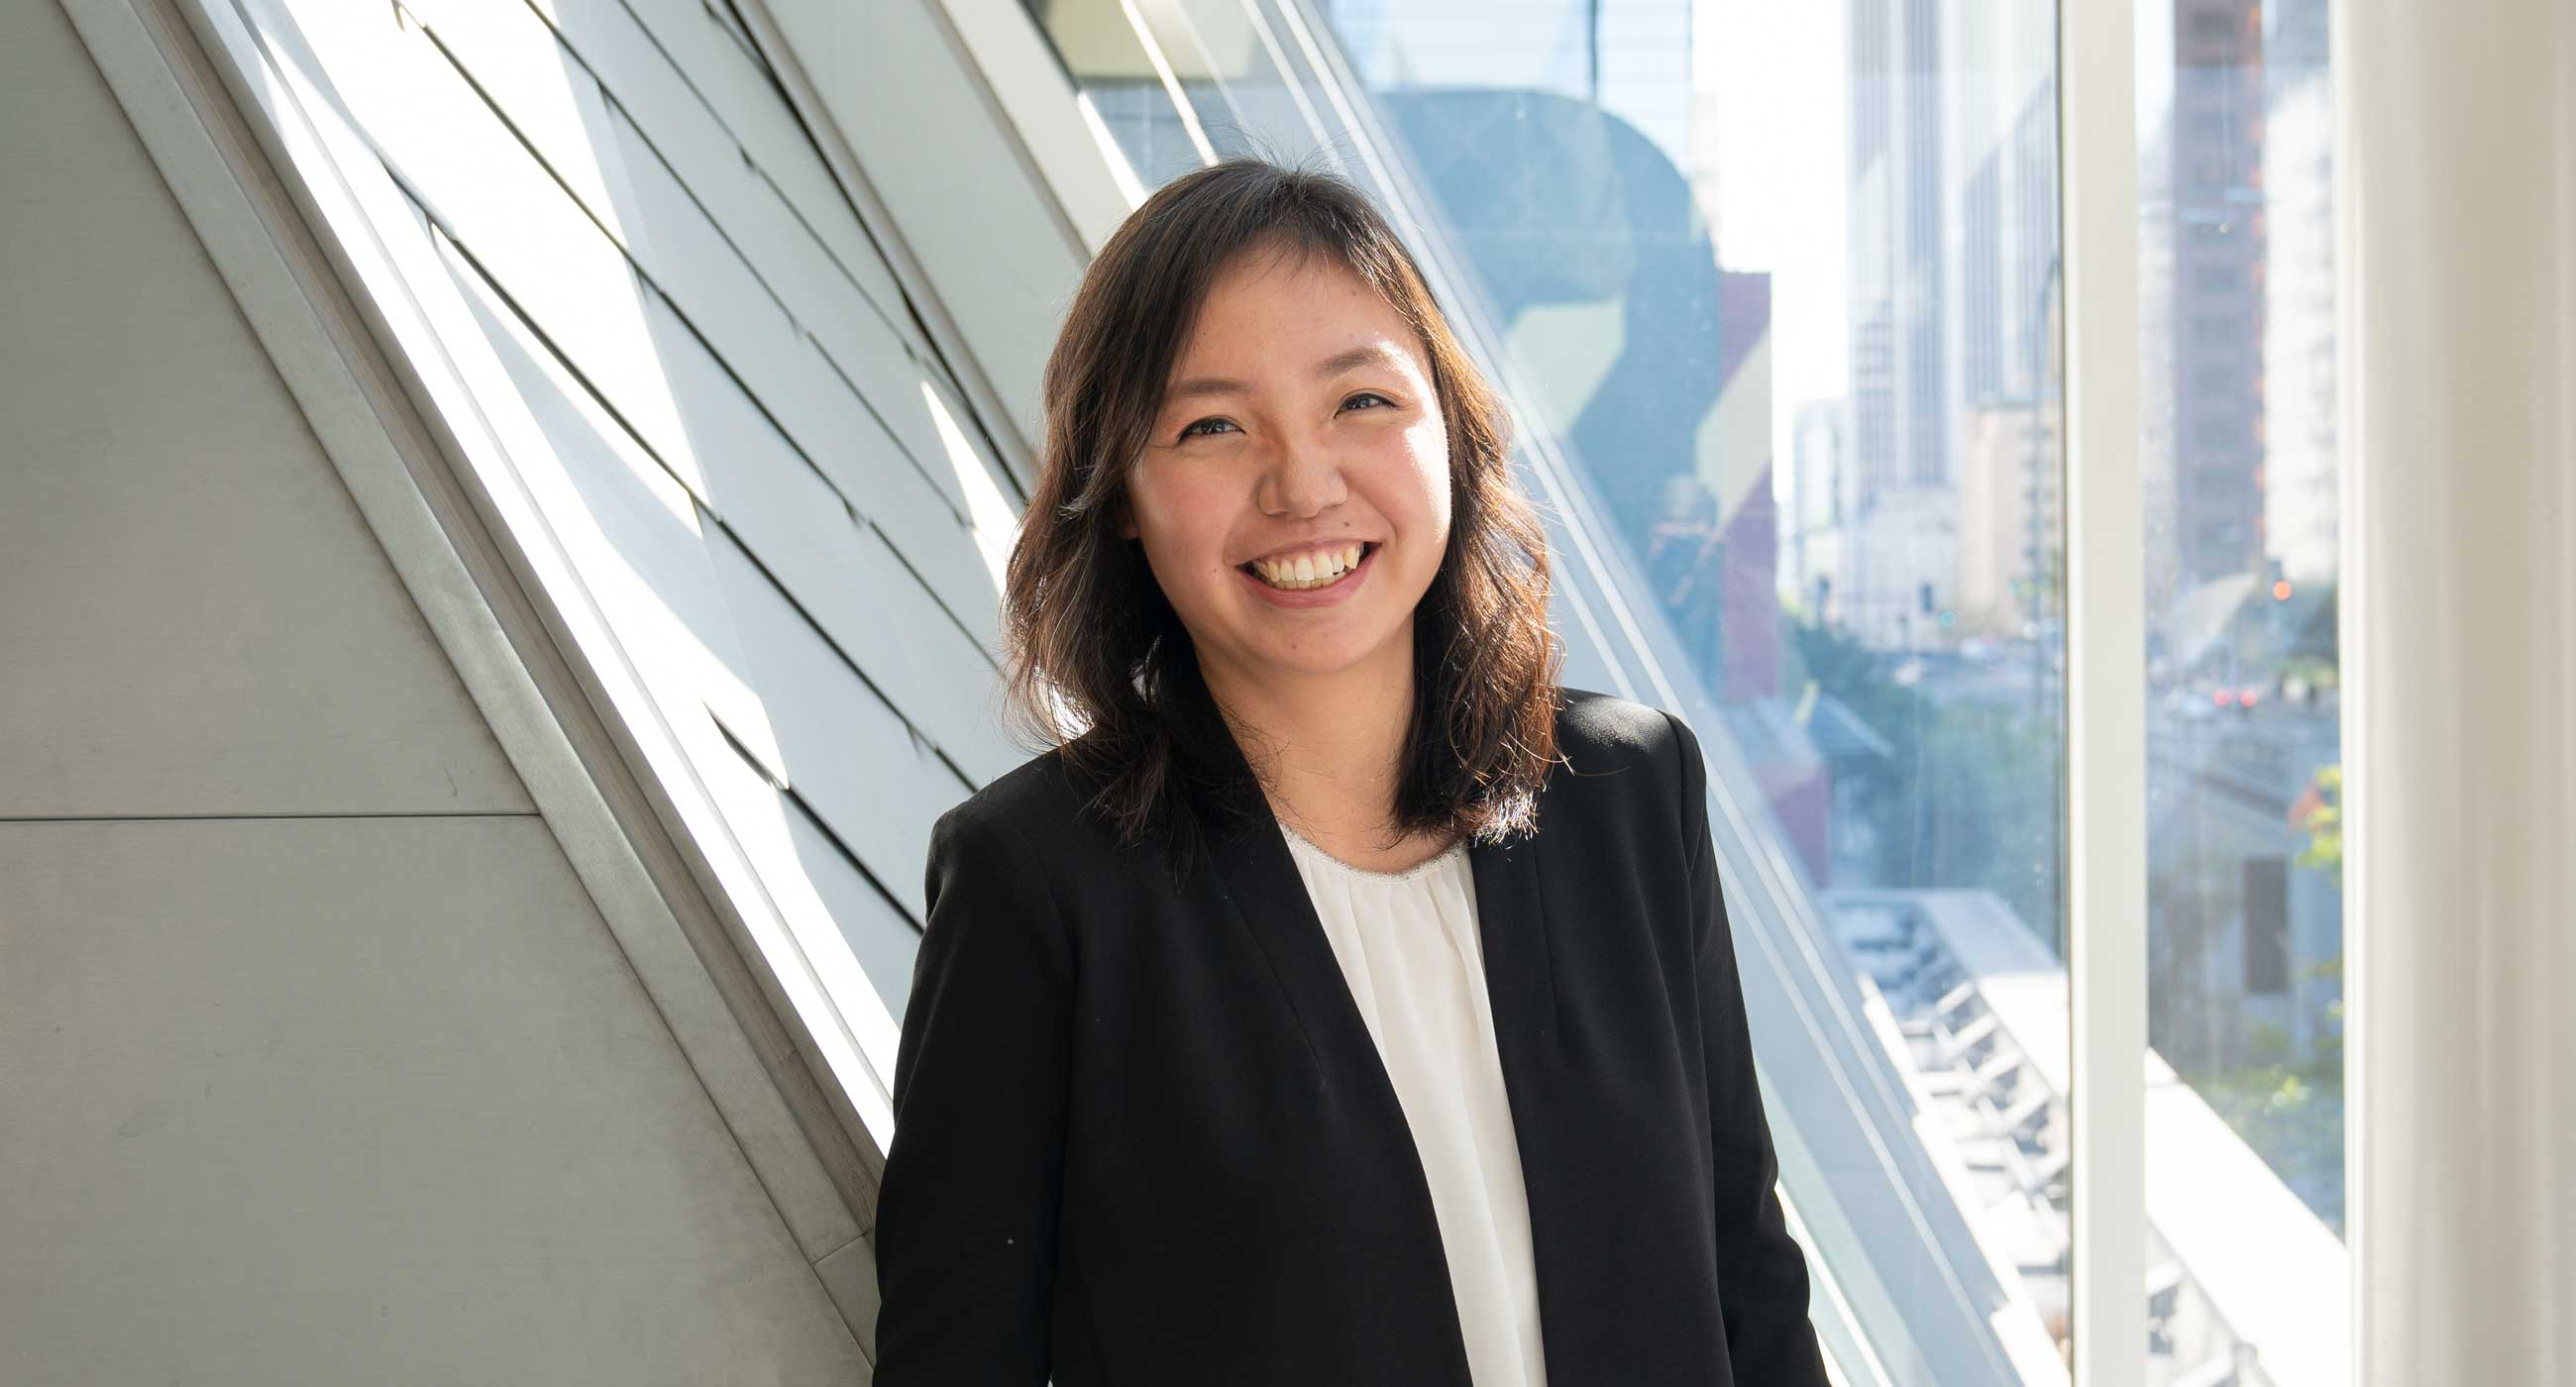 Hui Wu smiling in front of a window, wearing a blazer and a blouse.